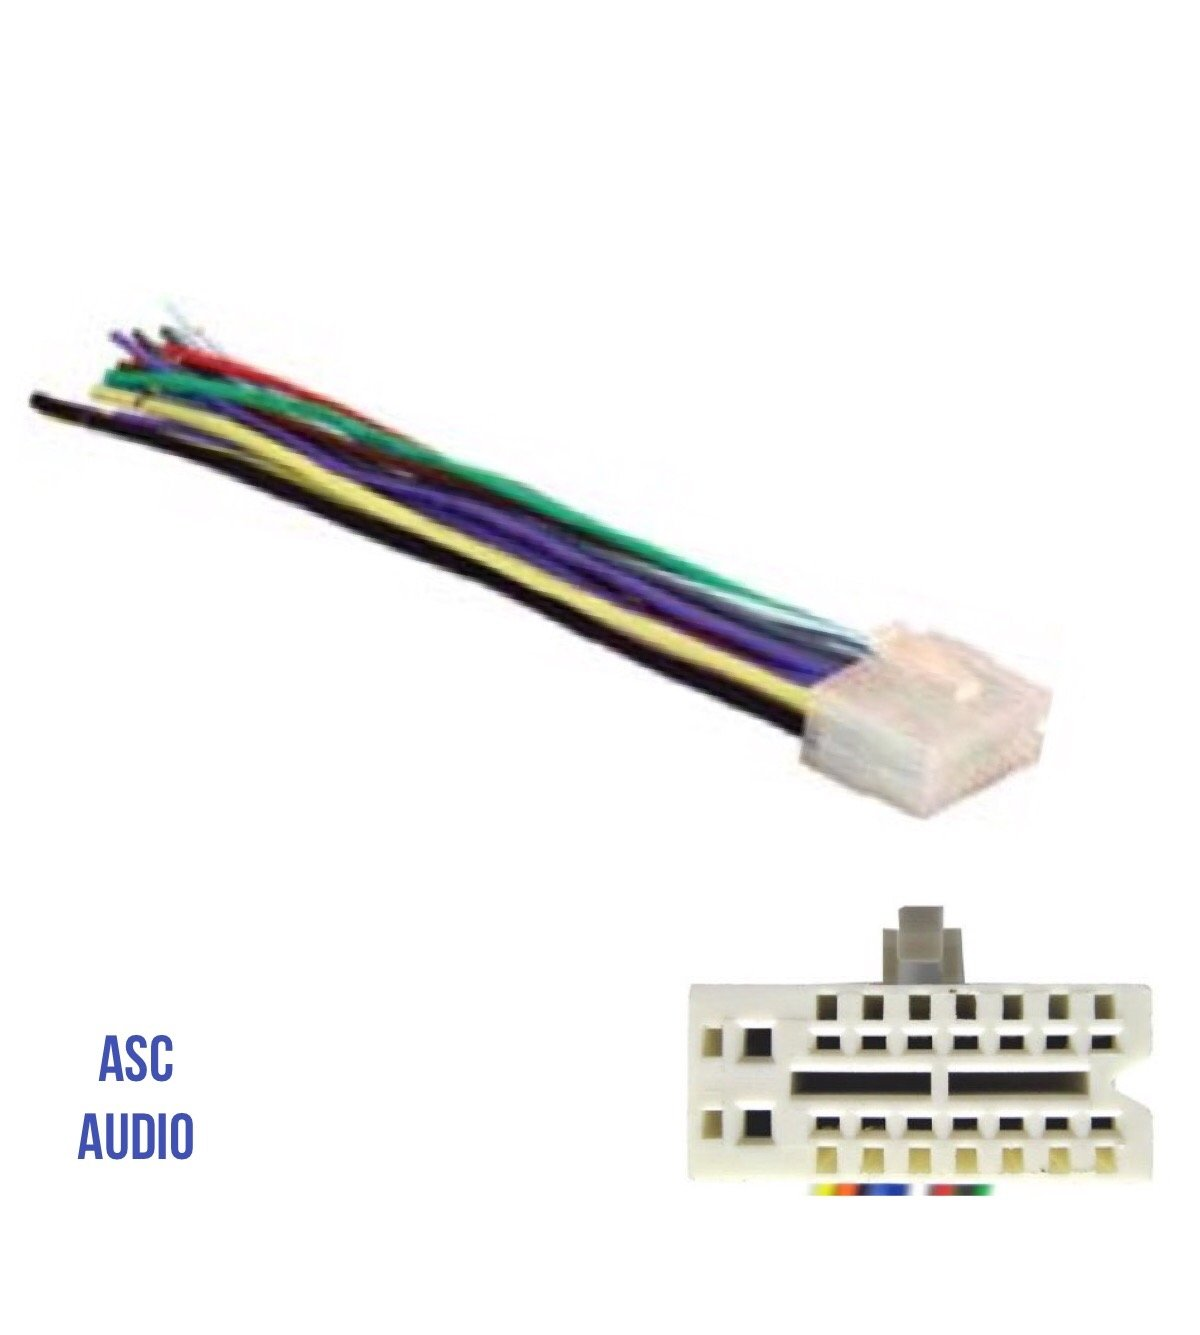 Asc Audio Car Stereo Radio Wire Harness Plug For Select Cd Changer Clarion Cz100 Wiring Diagram 16 Pin Radios Xdz616cz100z101cz200cz201 Cz300cz301cz401cz500cz501